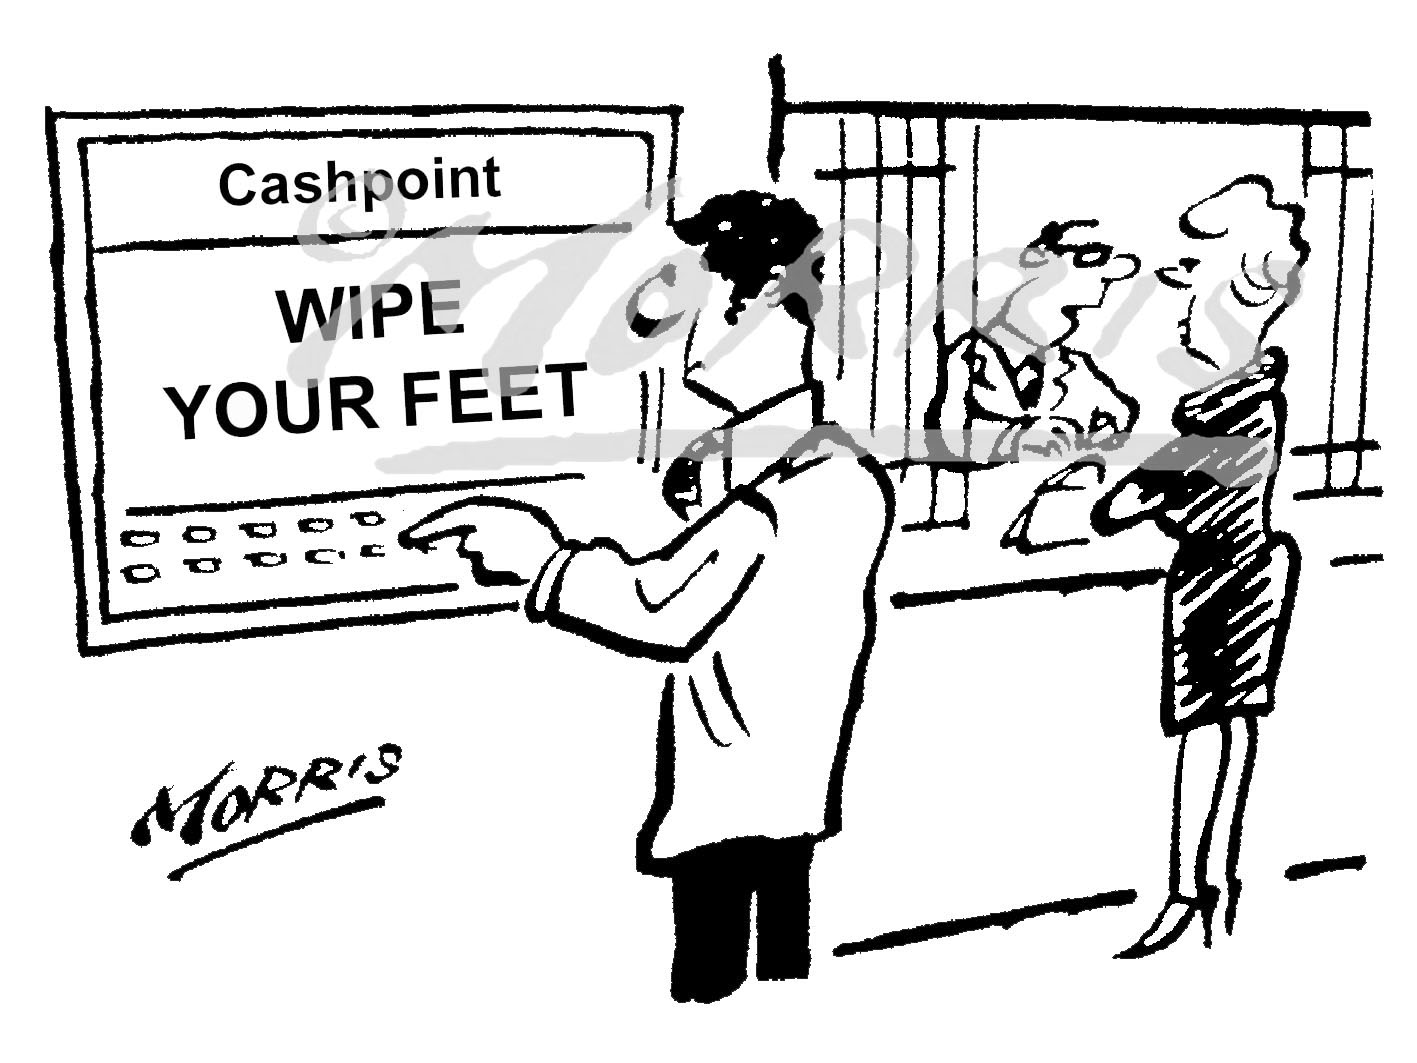 Cashpoint ATM withdrawal cartoon – Ref: 5077bw